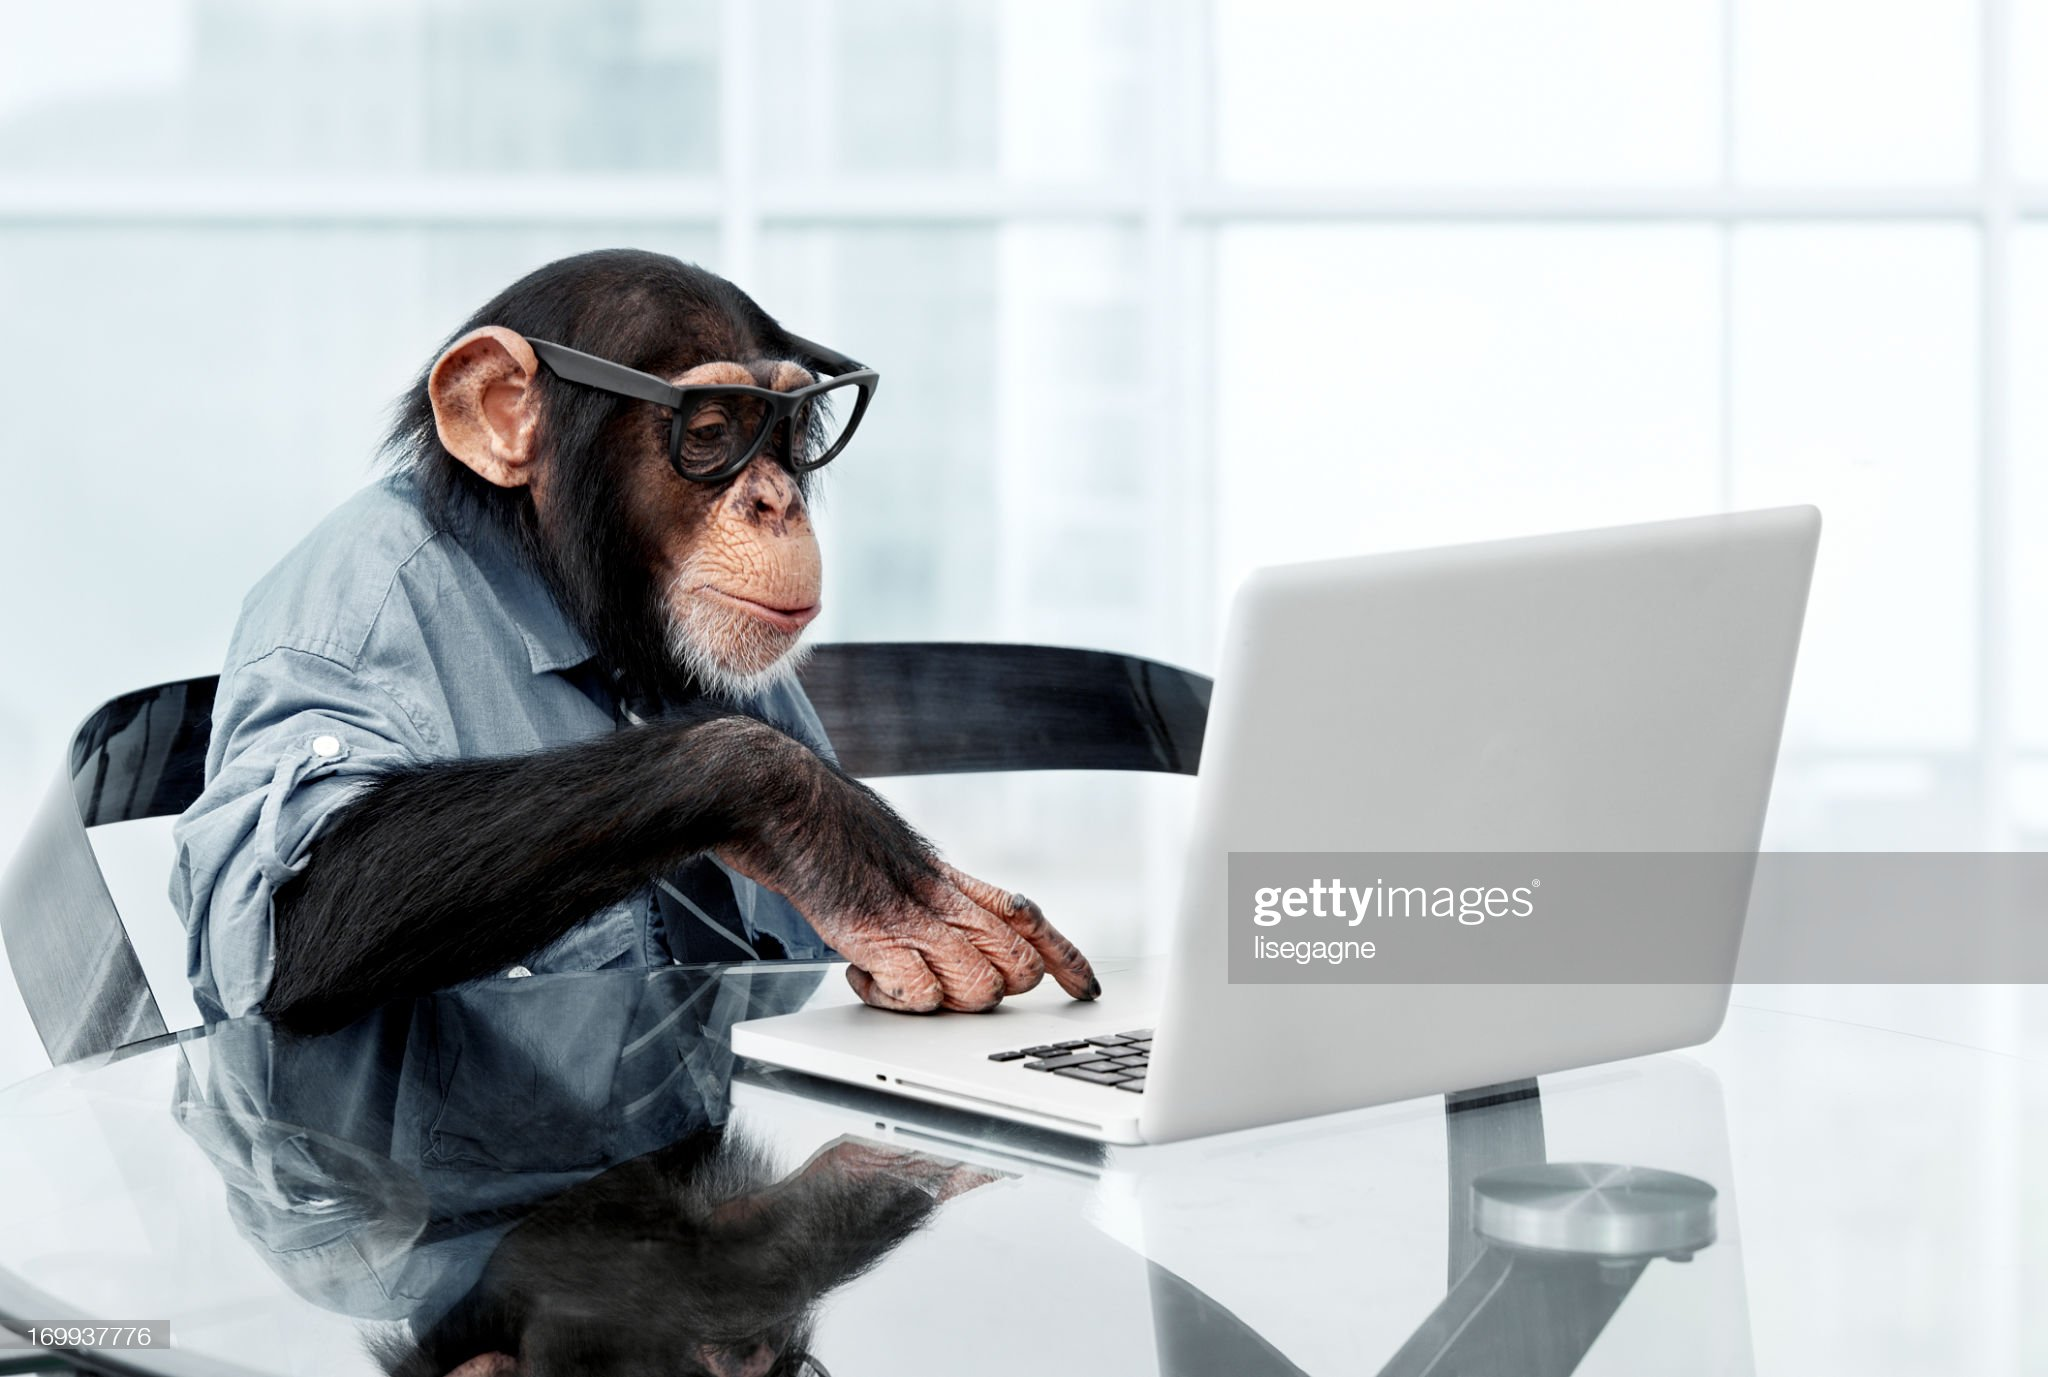 male-chimpanzee-in-business-clothes-picture-id169937776?s=2048x2048